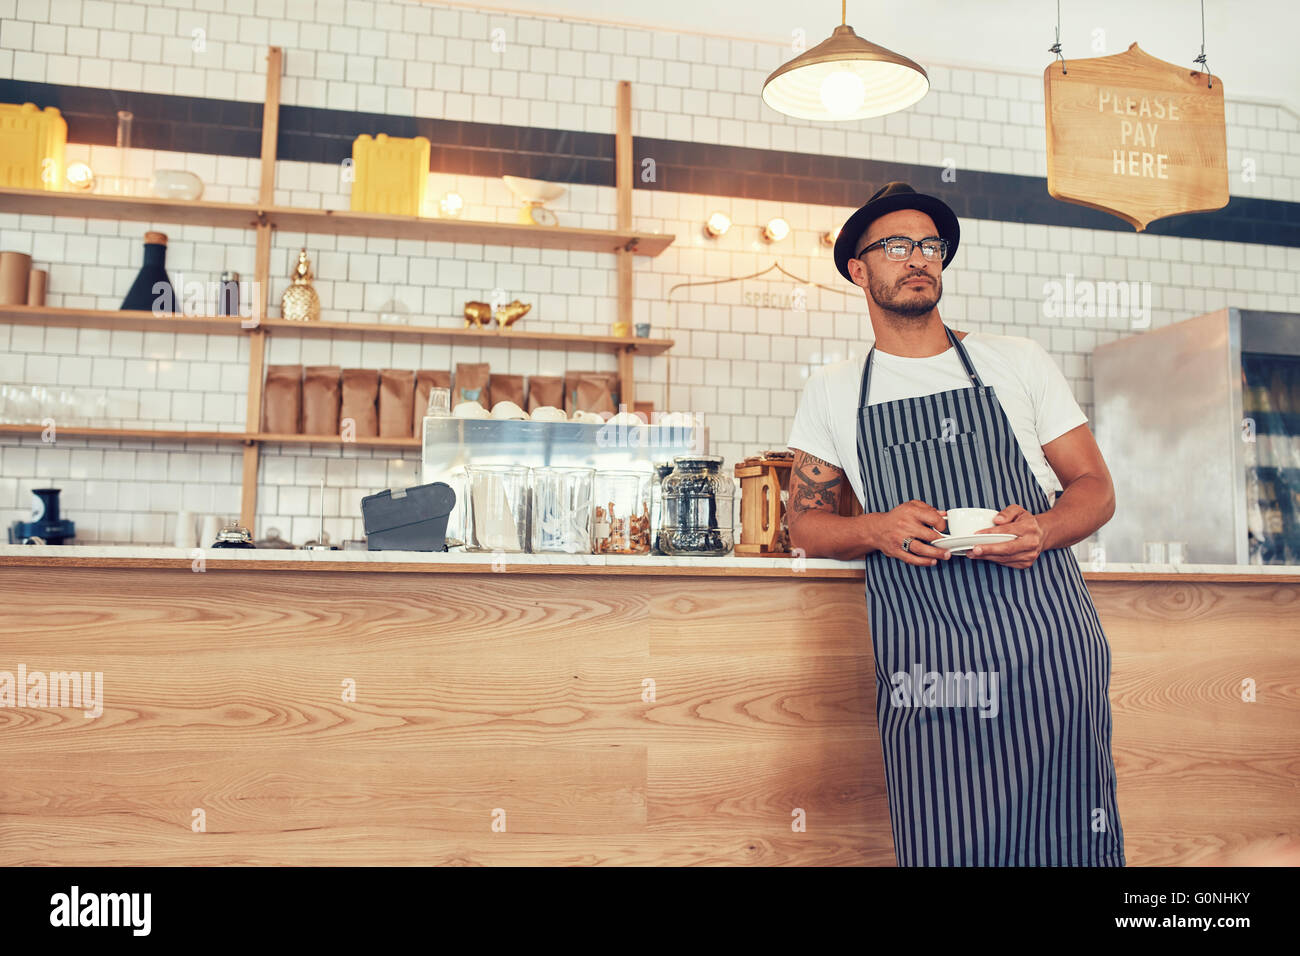 Portrait of young man working at a restaurant wearing an apron and hat leaning to the bar counter. Cafe owner standing - Stock Image